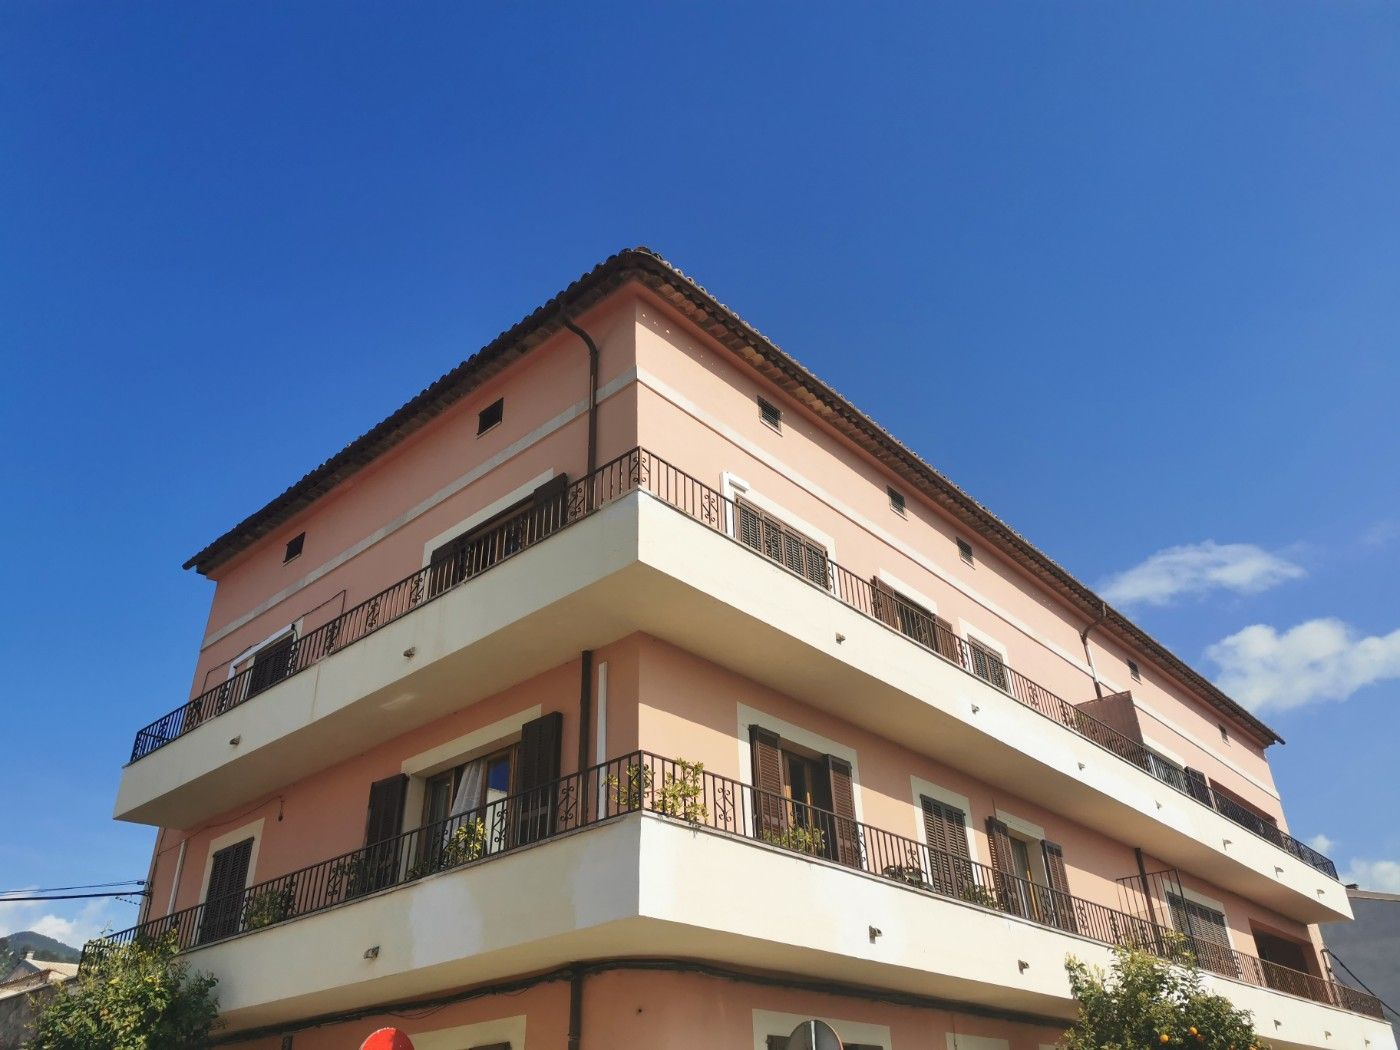 Location Appartement  Carrer sabateres, de les. Centro alaro exterior